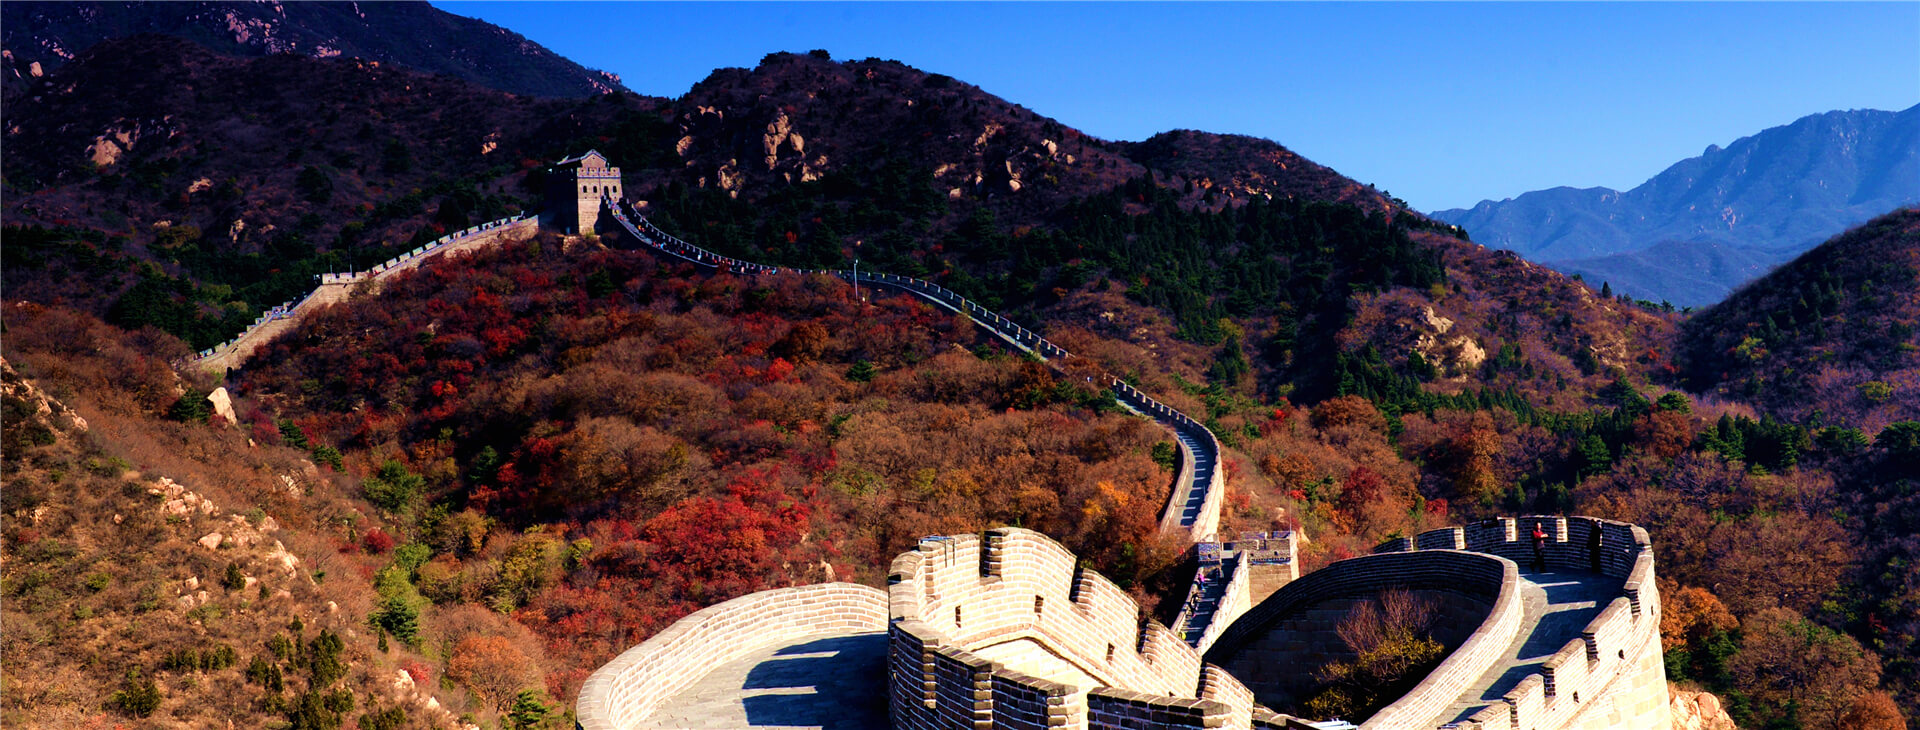 Great Yanqing Great Wall_fororder_我的中國心 郭東亮攝_副本 (1)